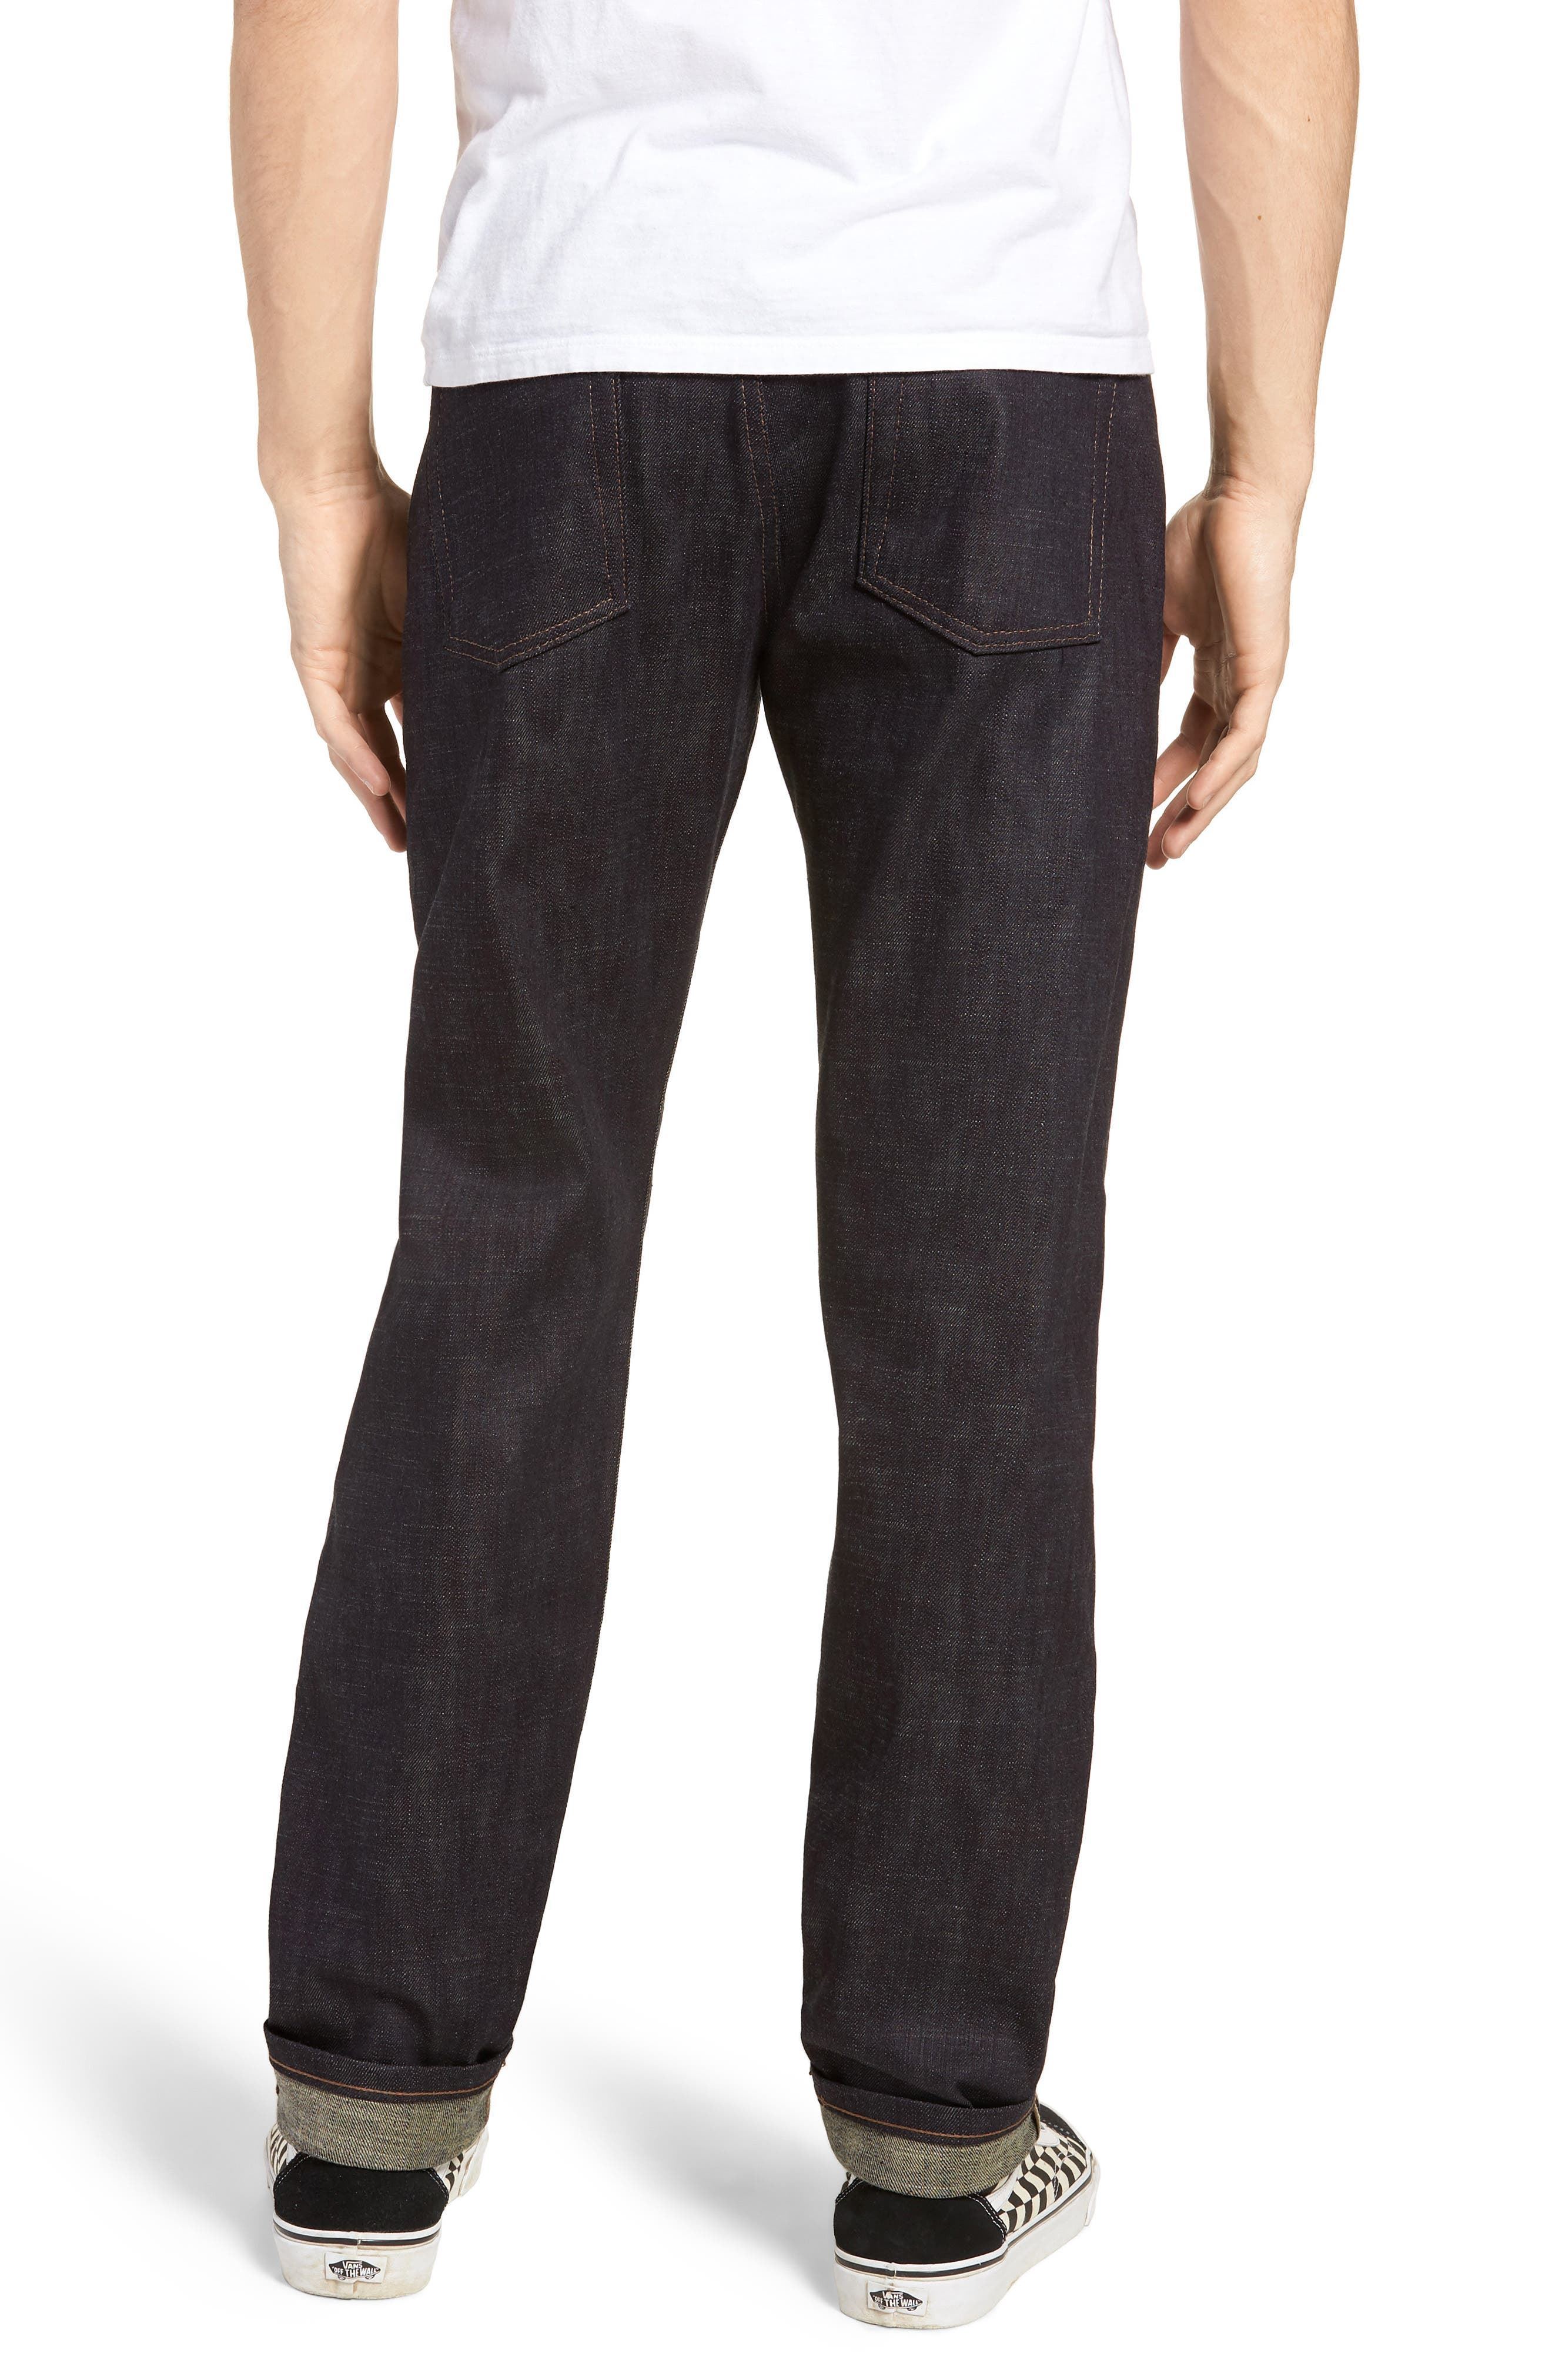 Easy Guy Slouchy Skinny Fit Jeans,                             Alternate thumbnail 2, color,                             401